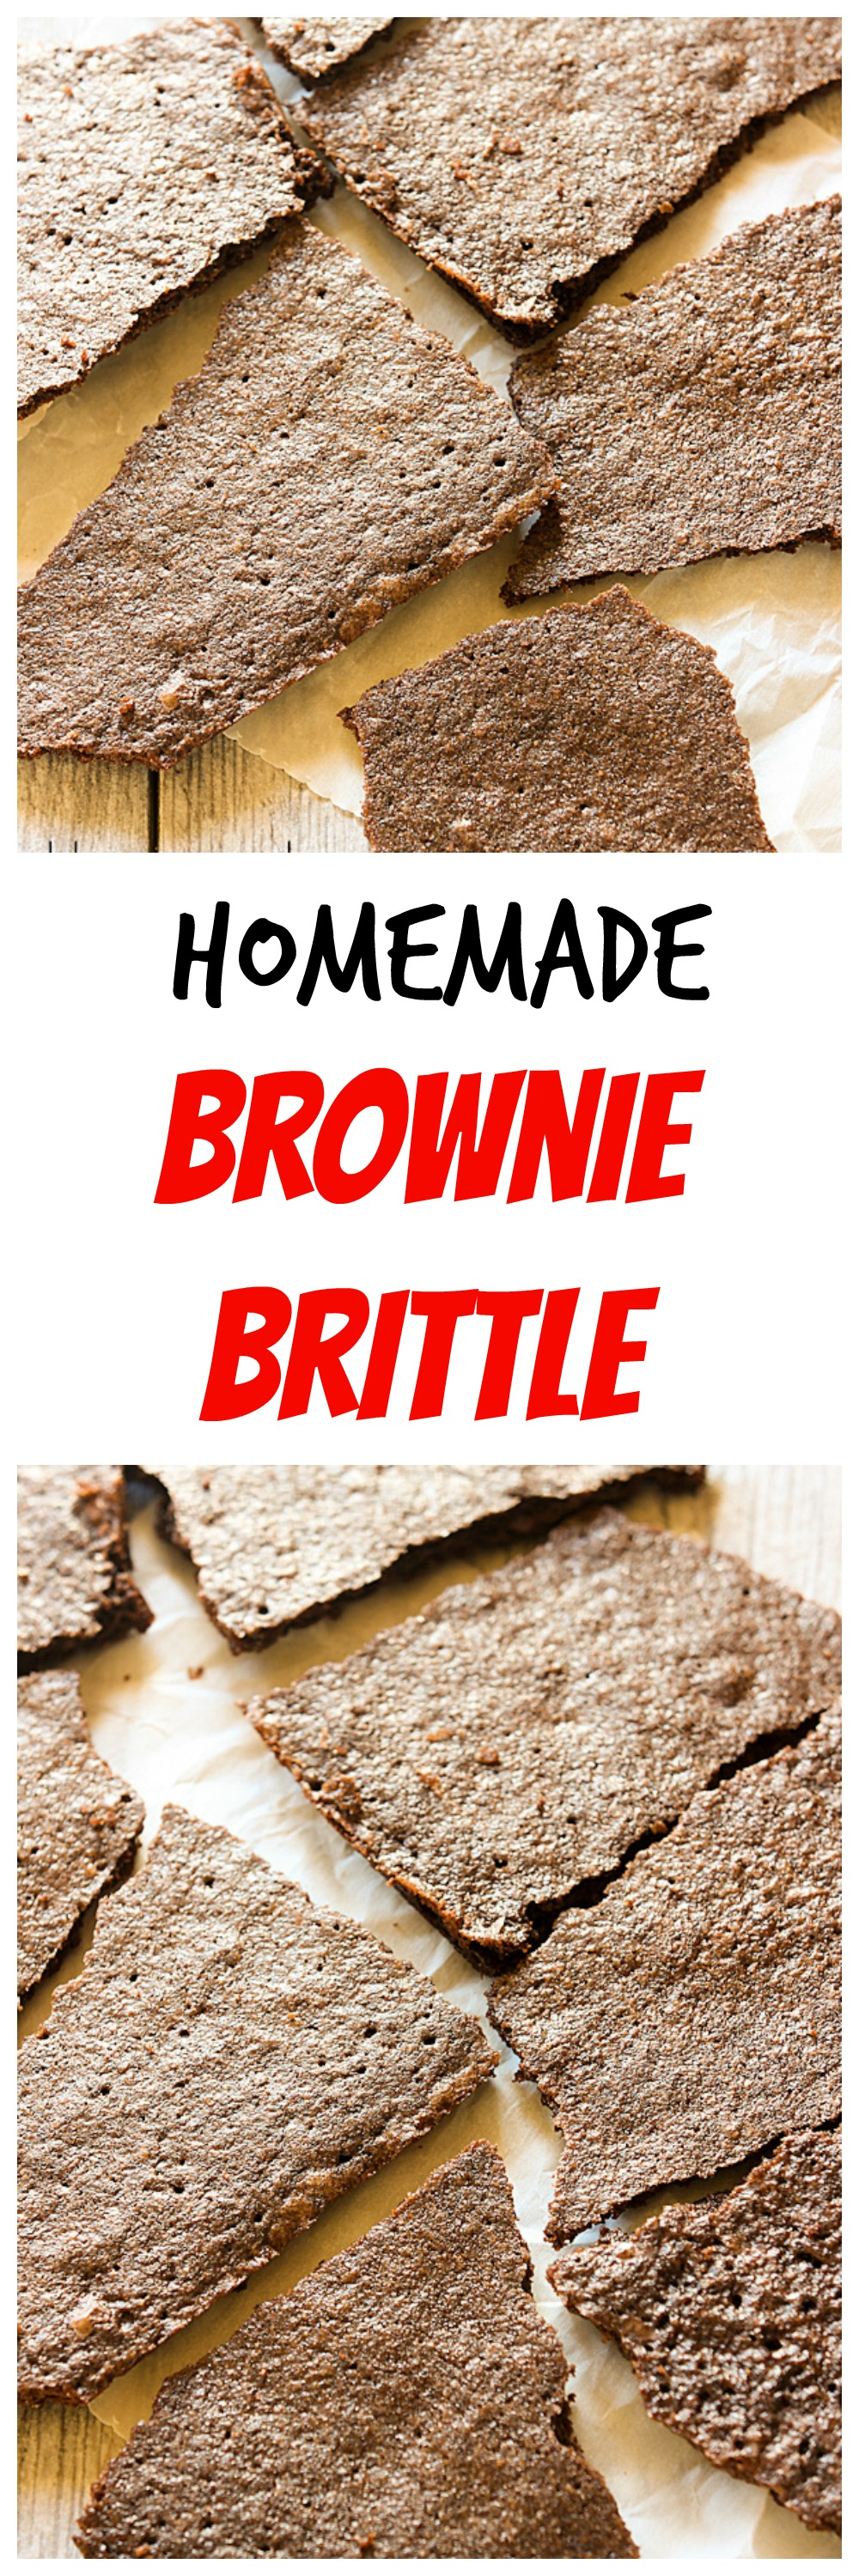 Homemade Brownie Brittle